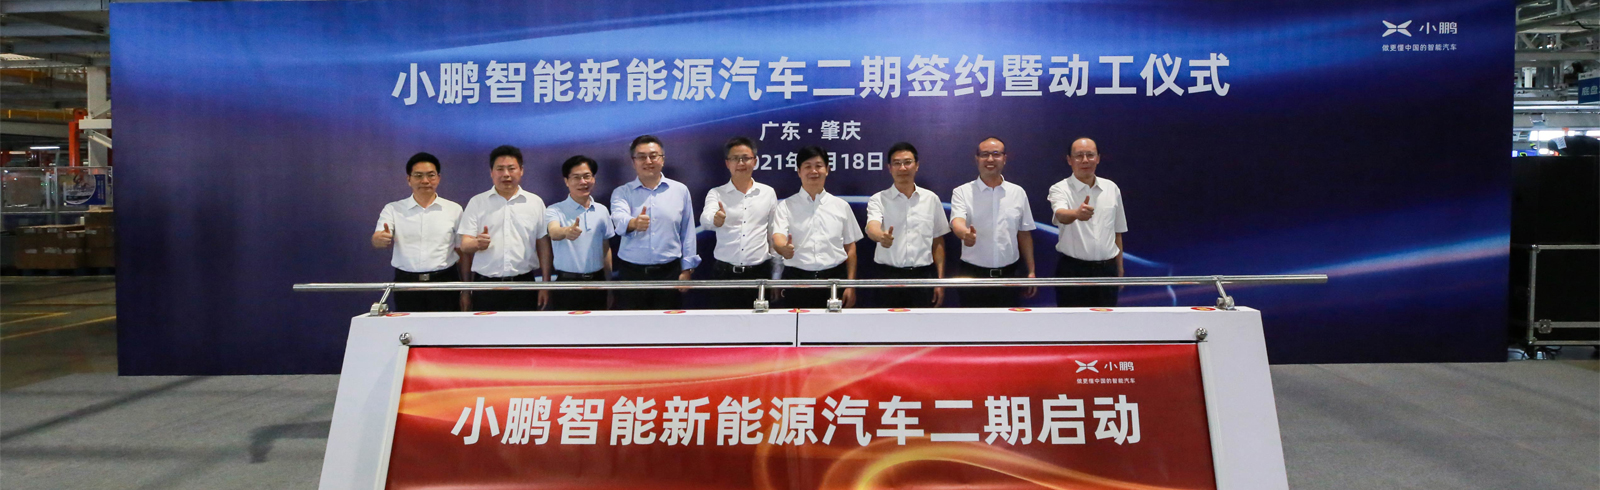 XPeng expands its manufacturing base to increase production capacity from 100,000 to 200,000